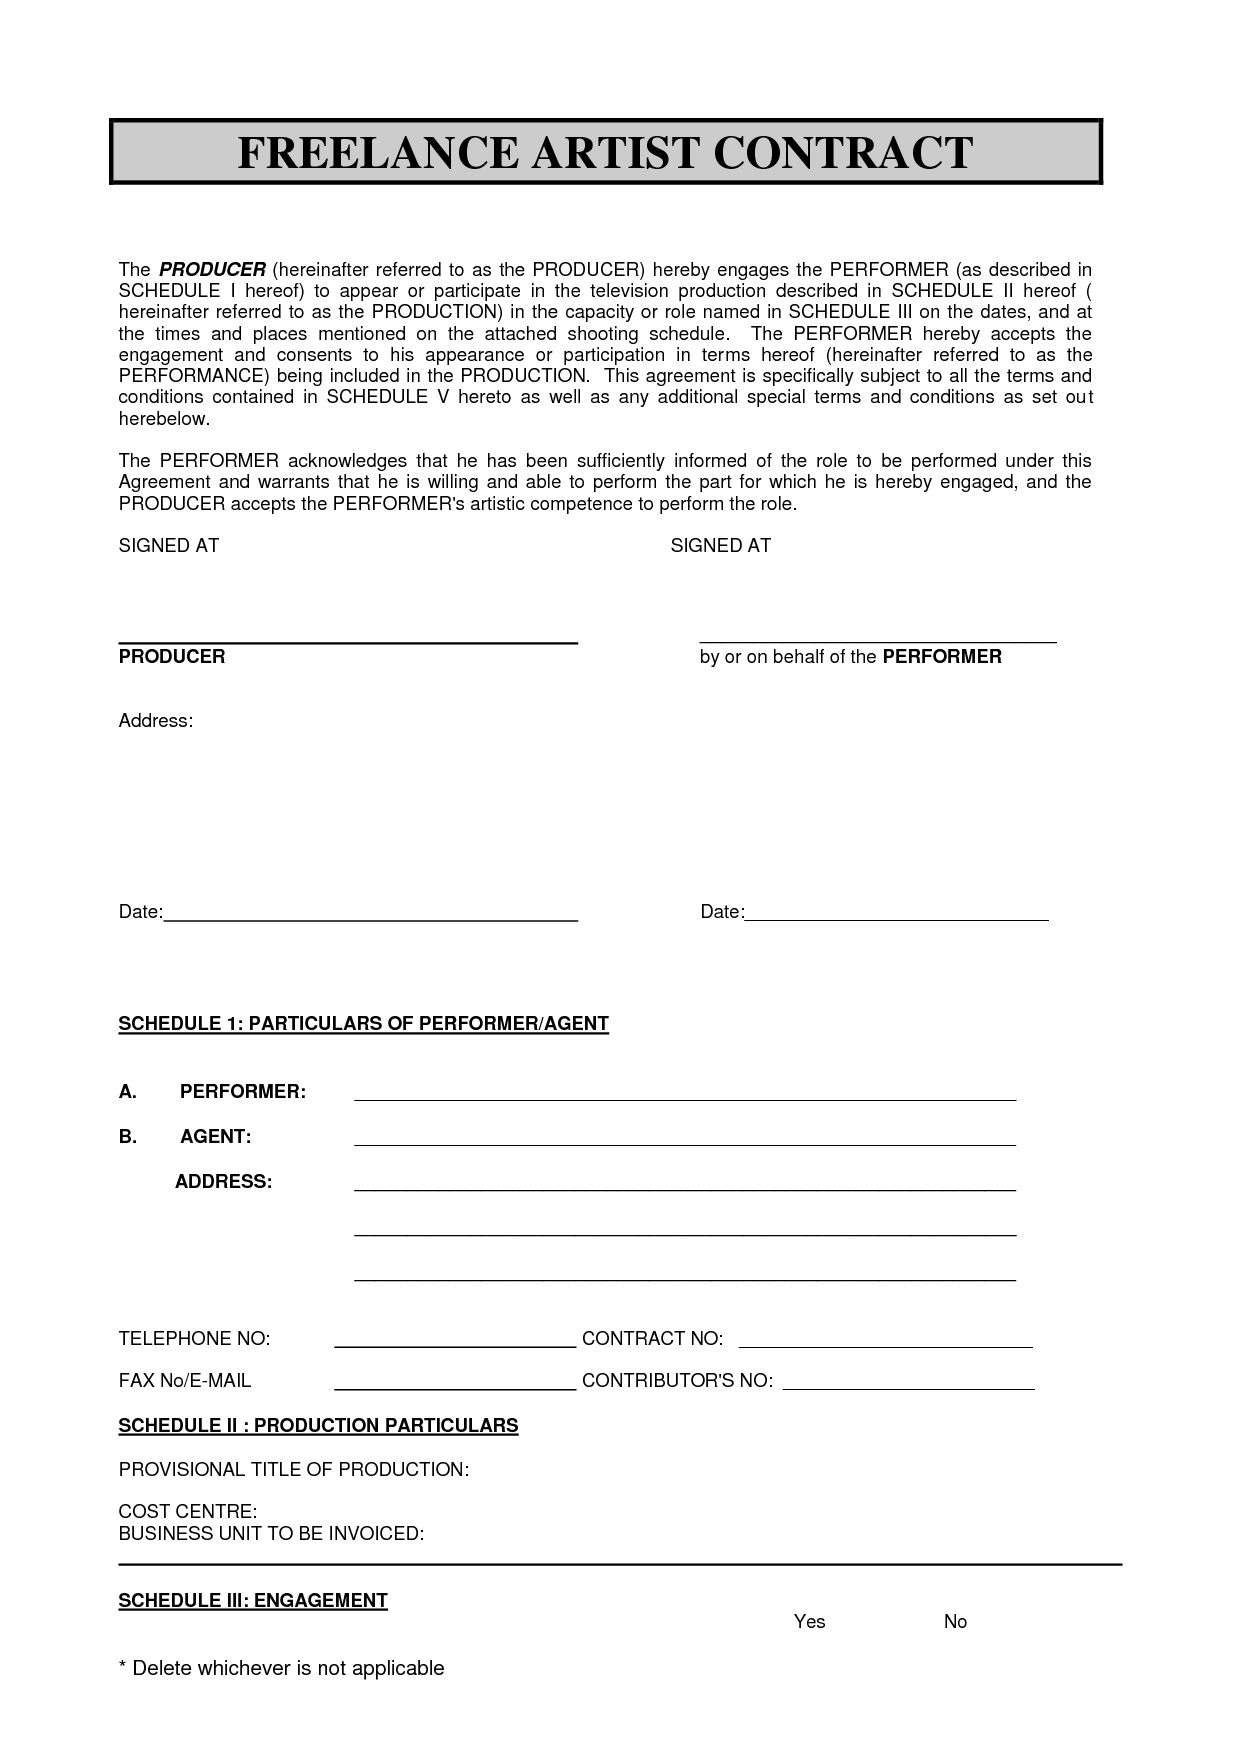 sabc contract 2010pdf freelance artist contract by sdsdfqw21 do you want to